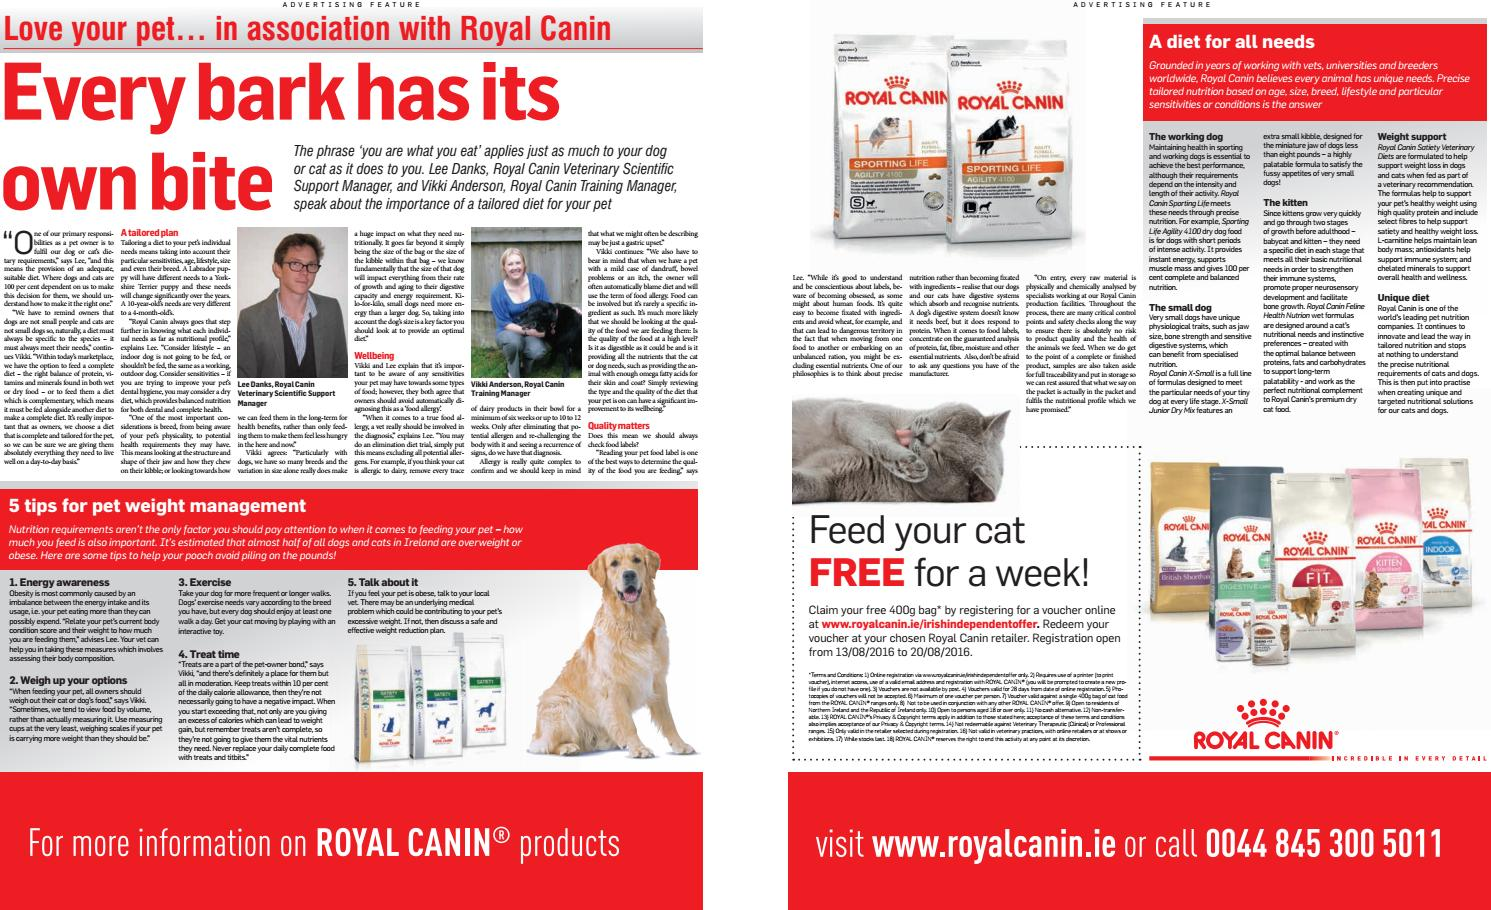 Love Your Pet in association with Royal Canin by Clodagh